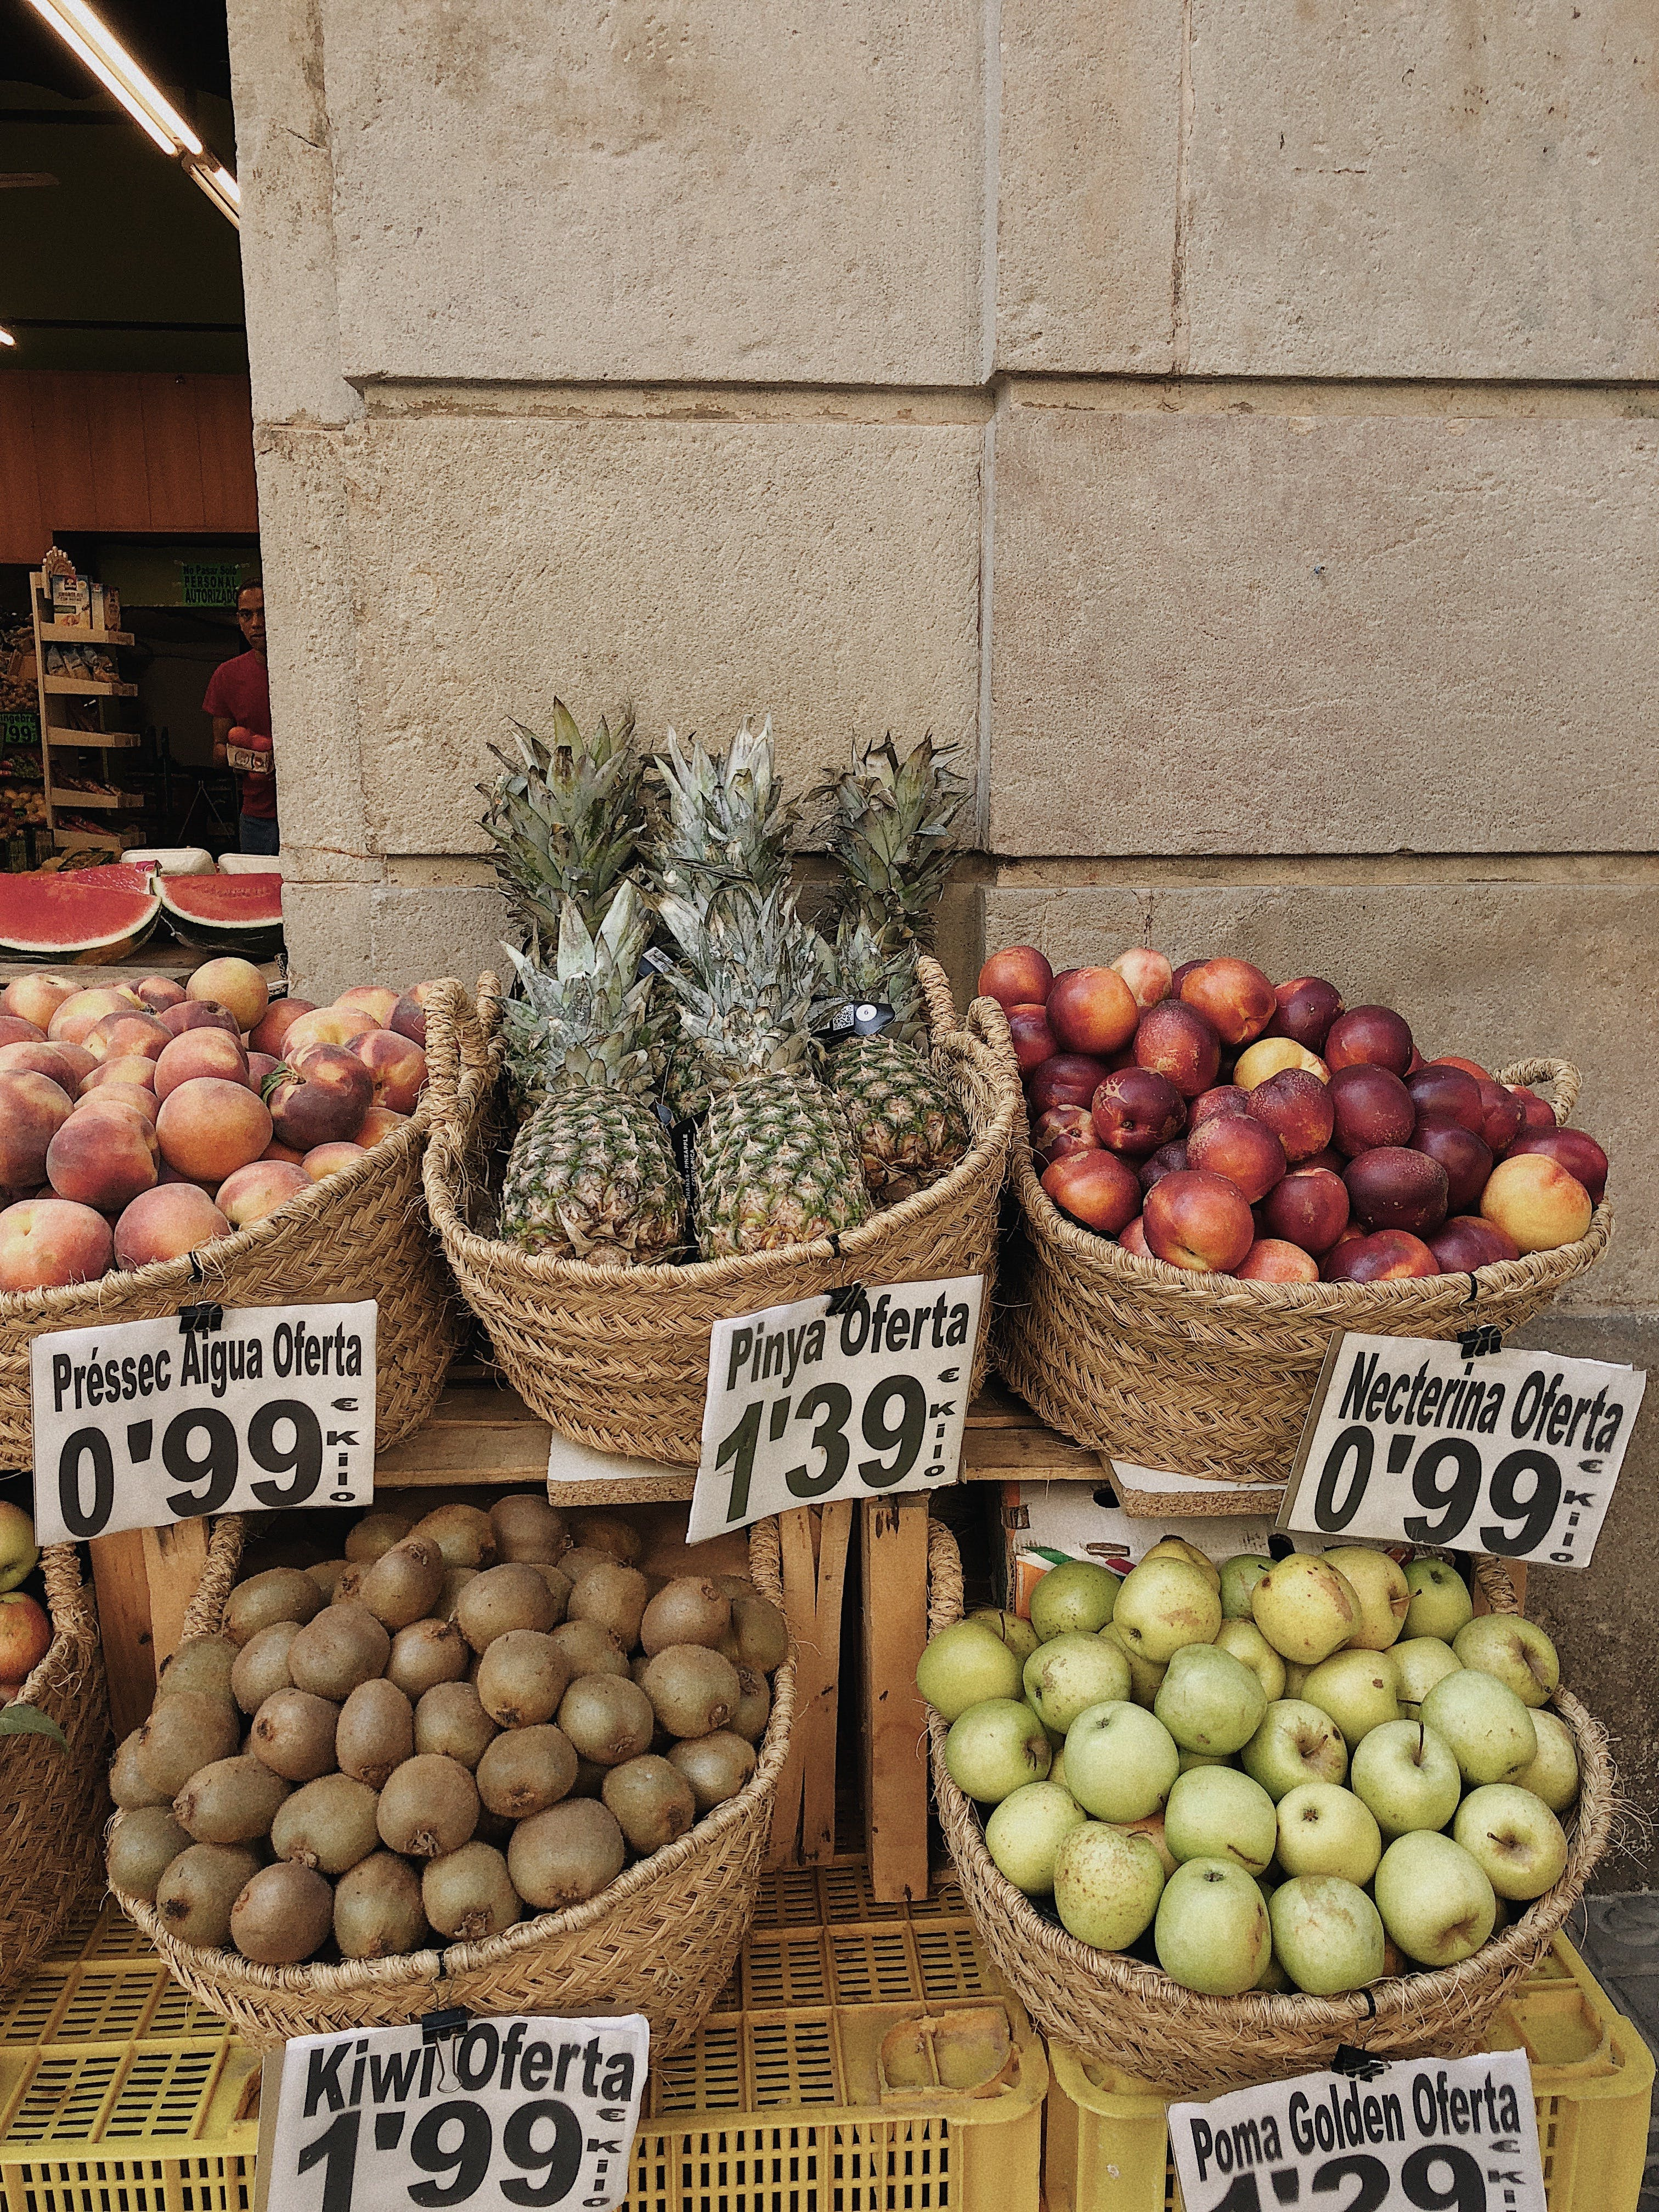 Baskets of Fruits Near Brown Concrete Wall